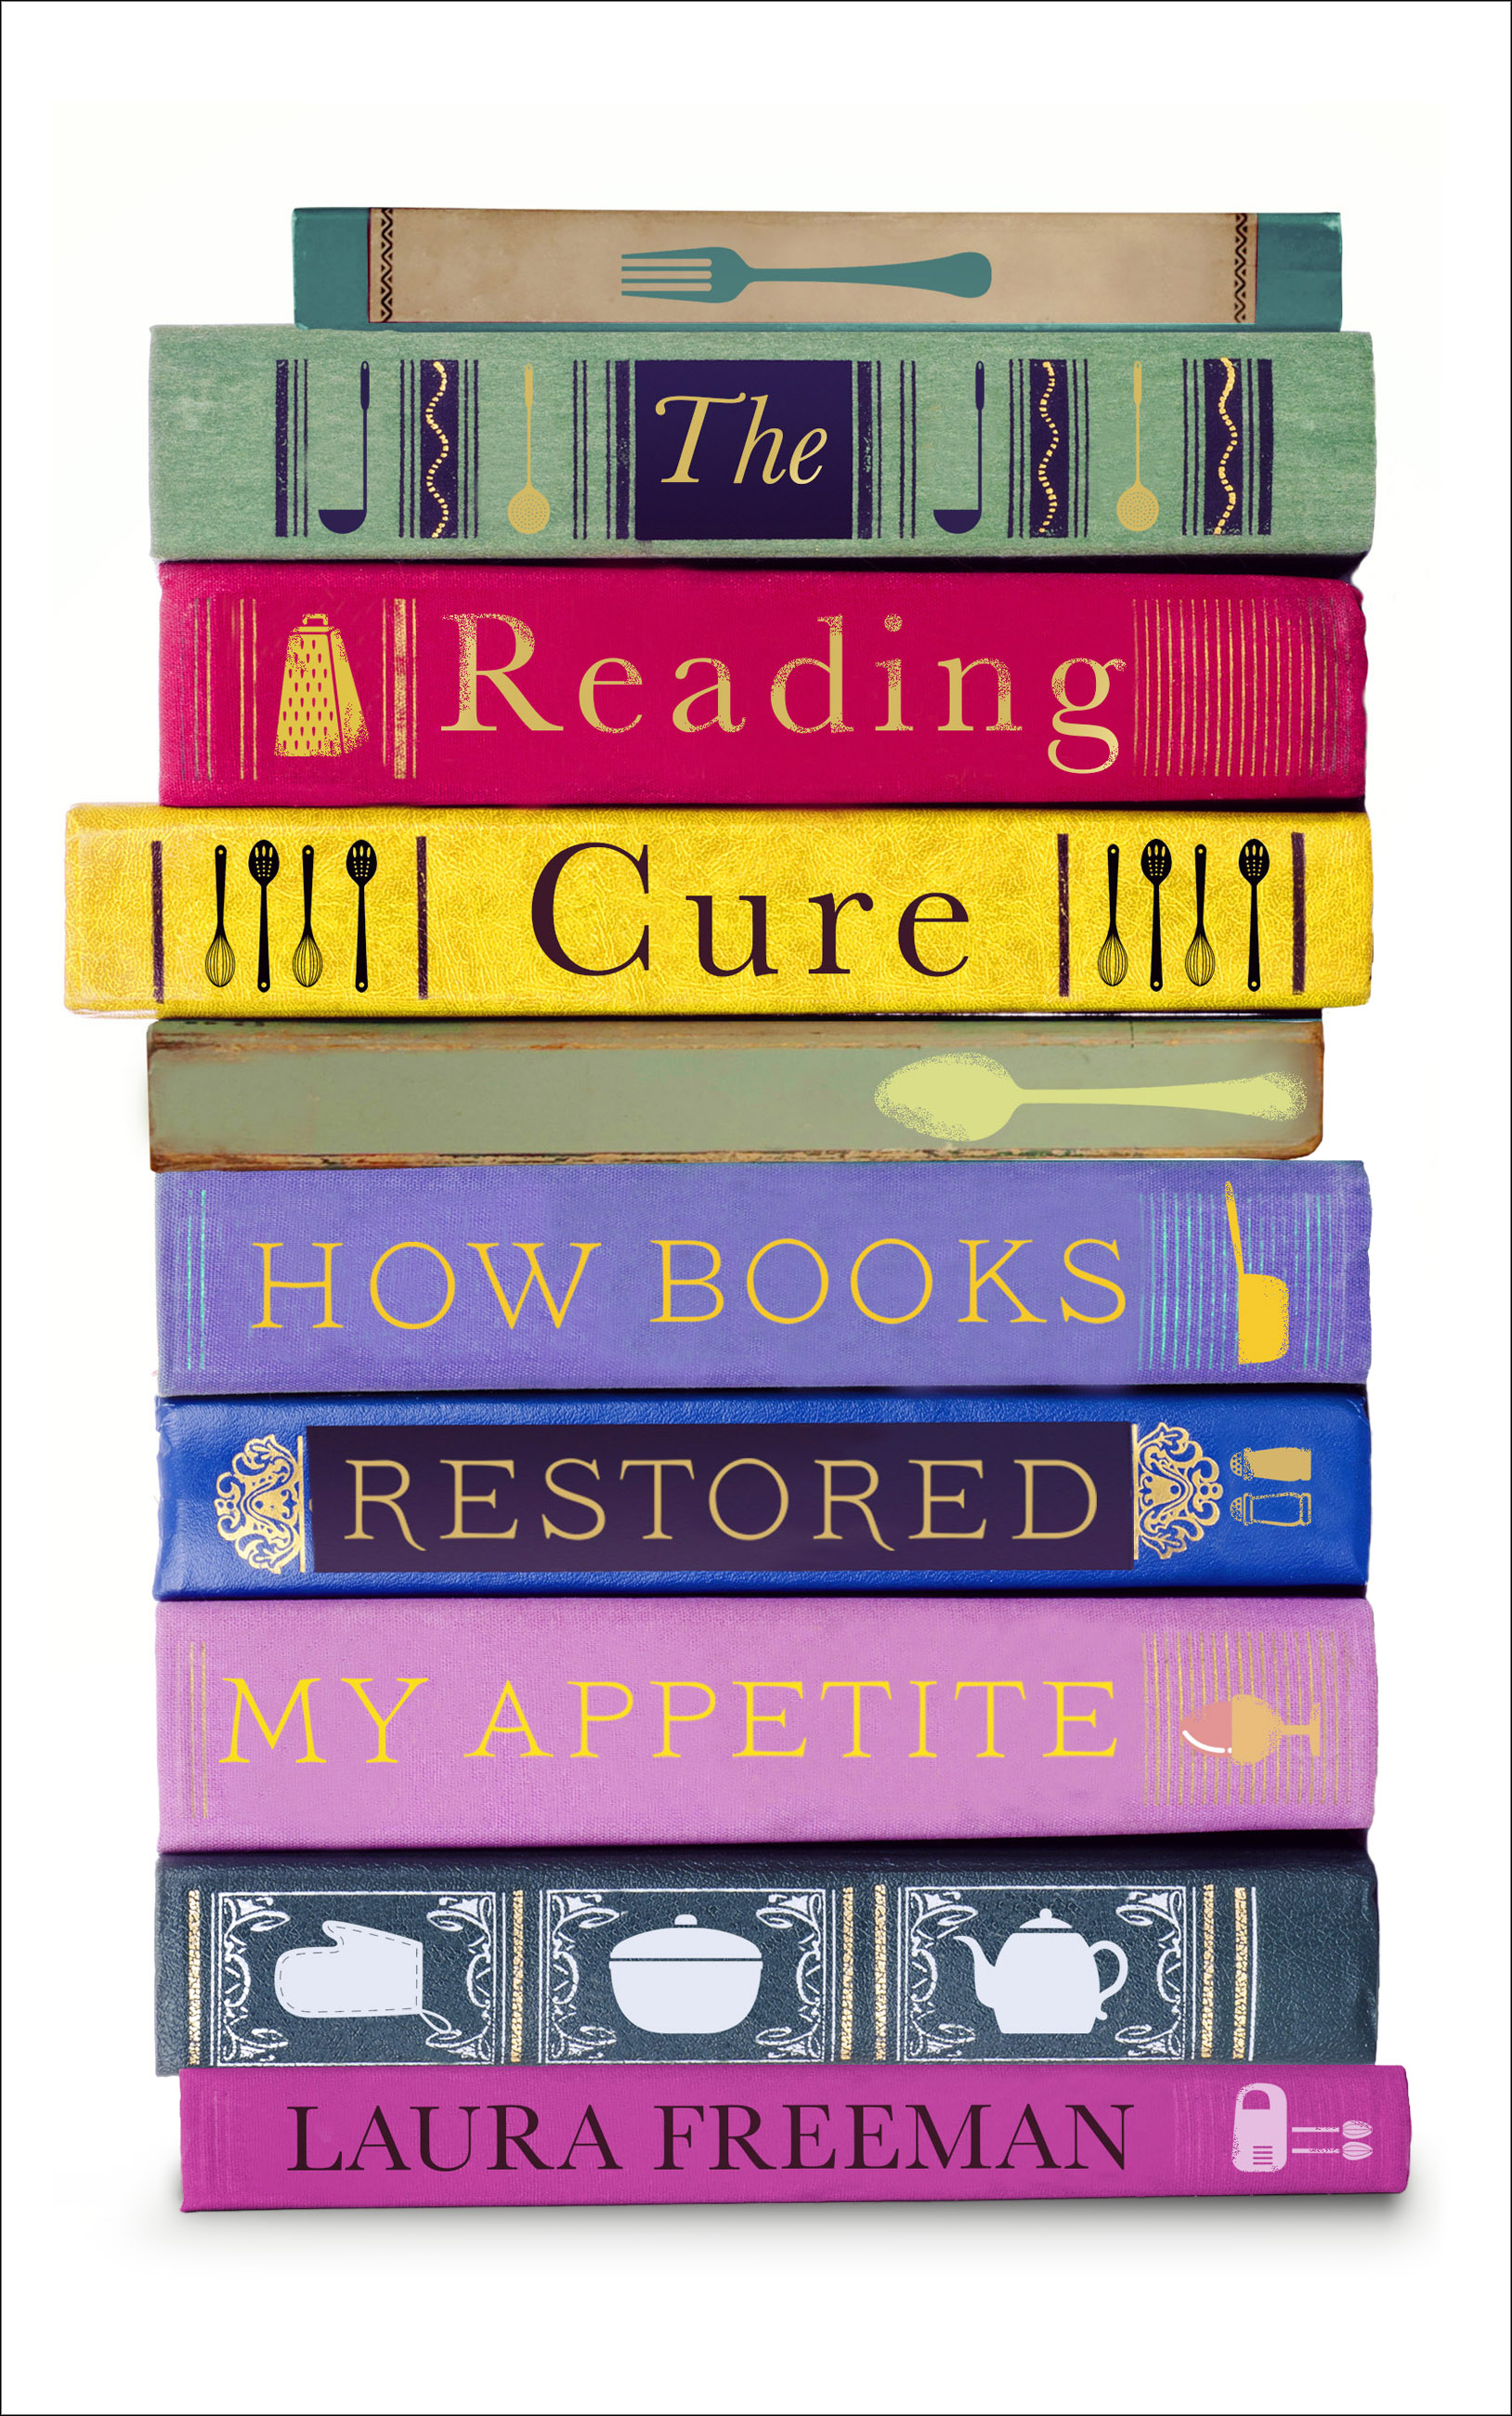 TheReadingCure.jpg